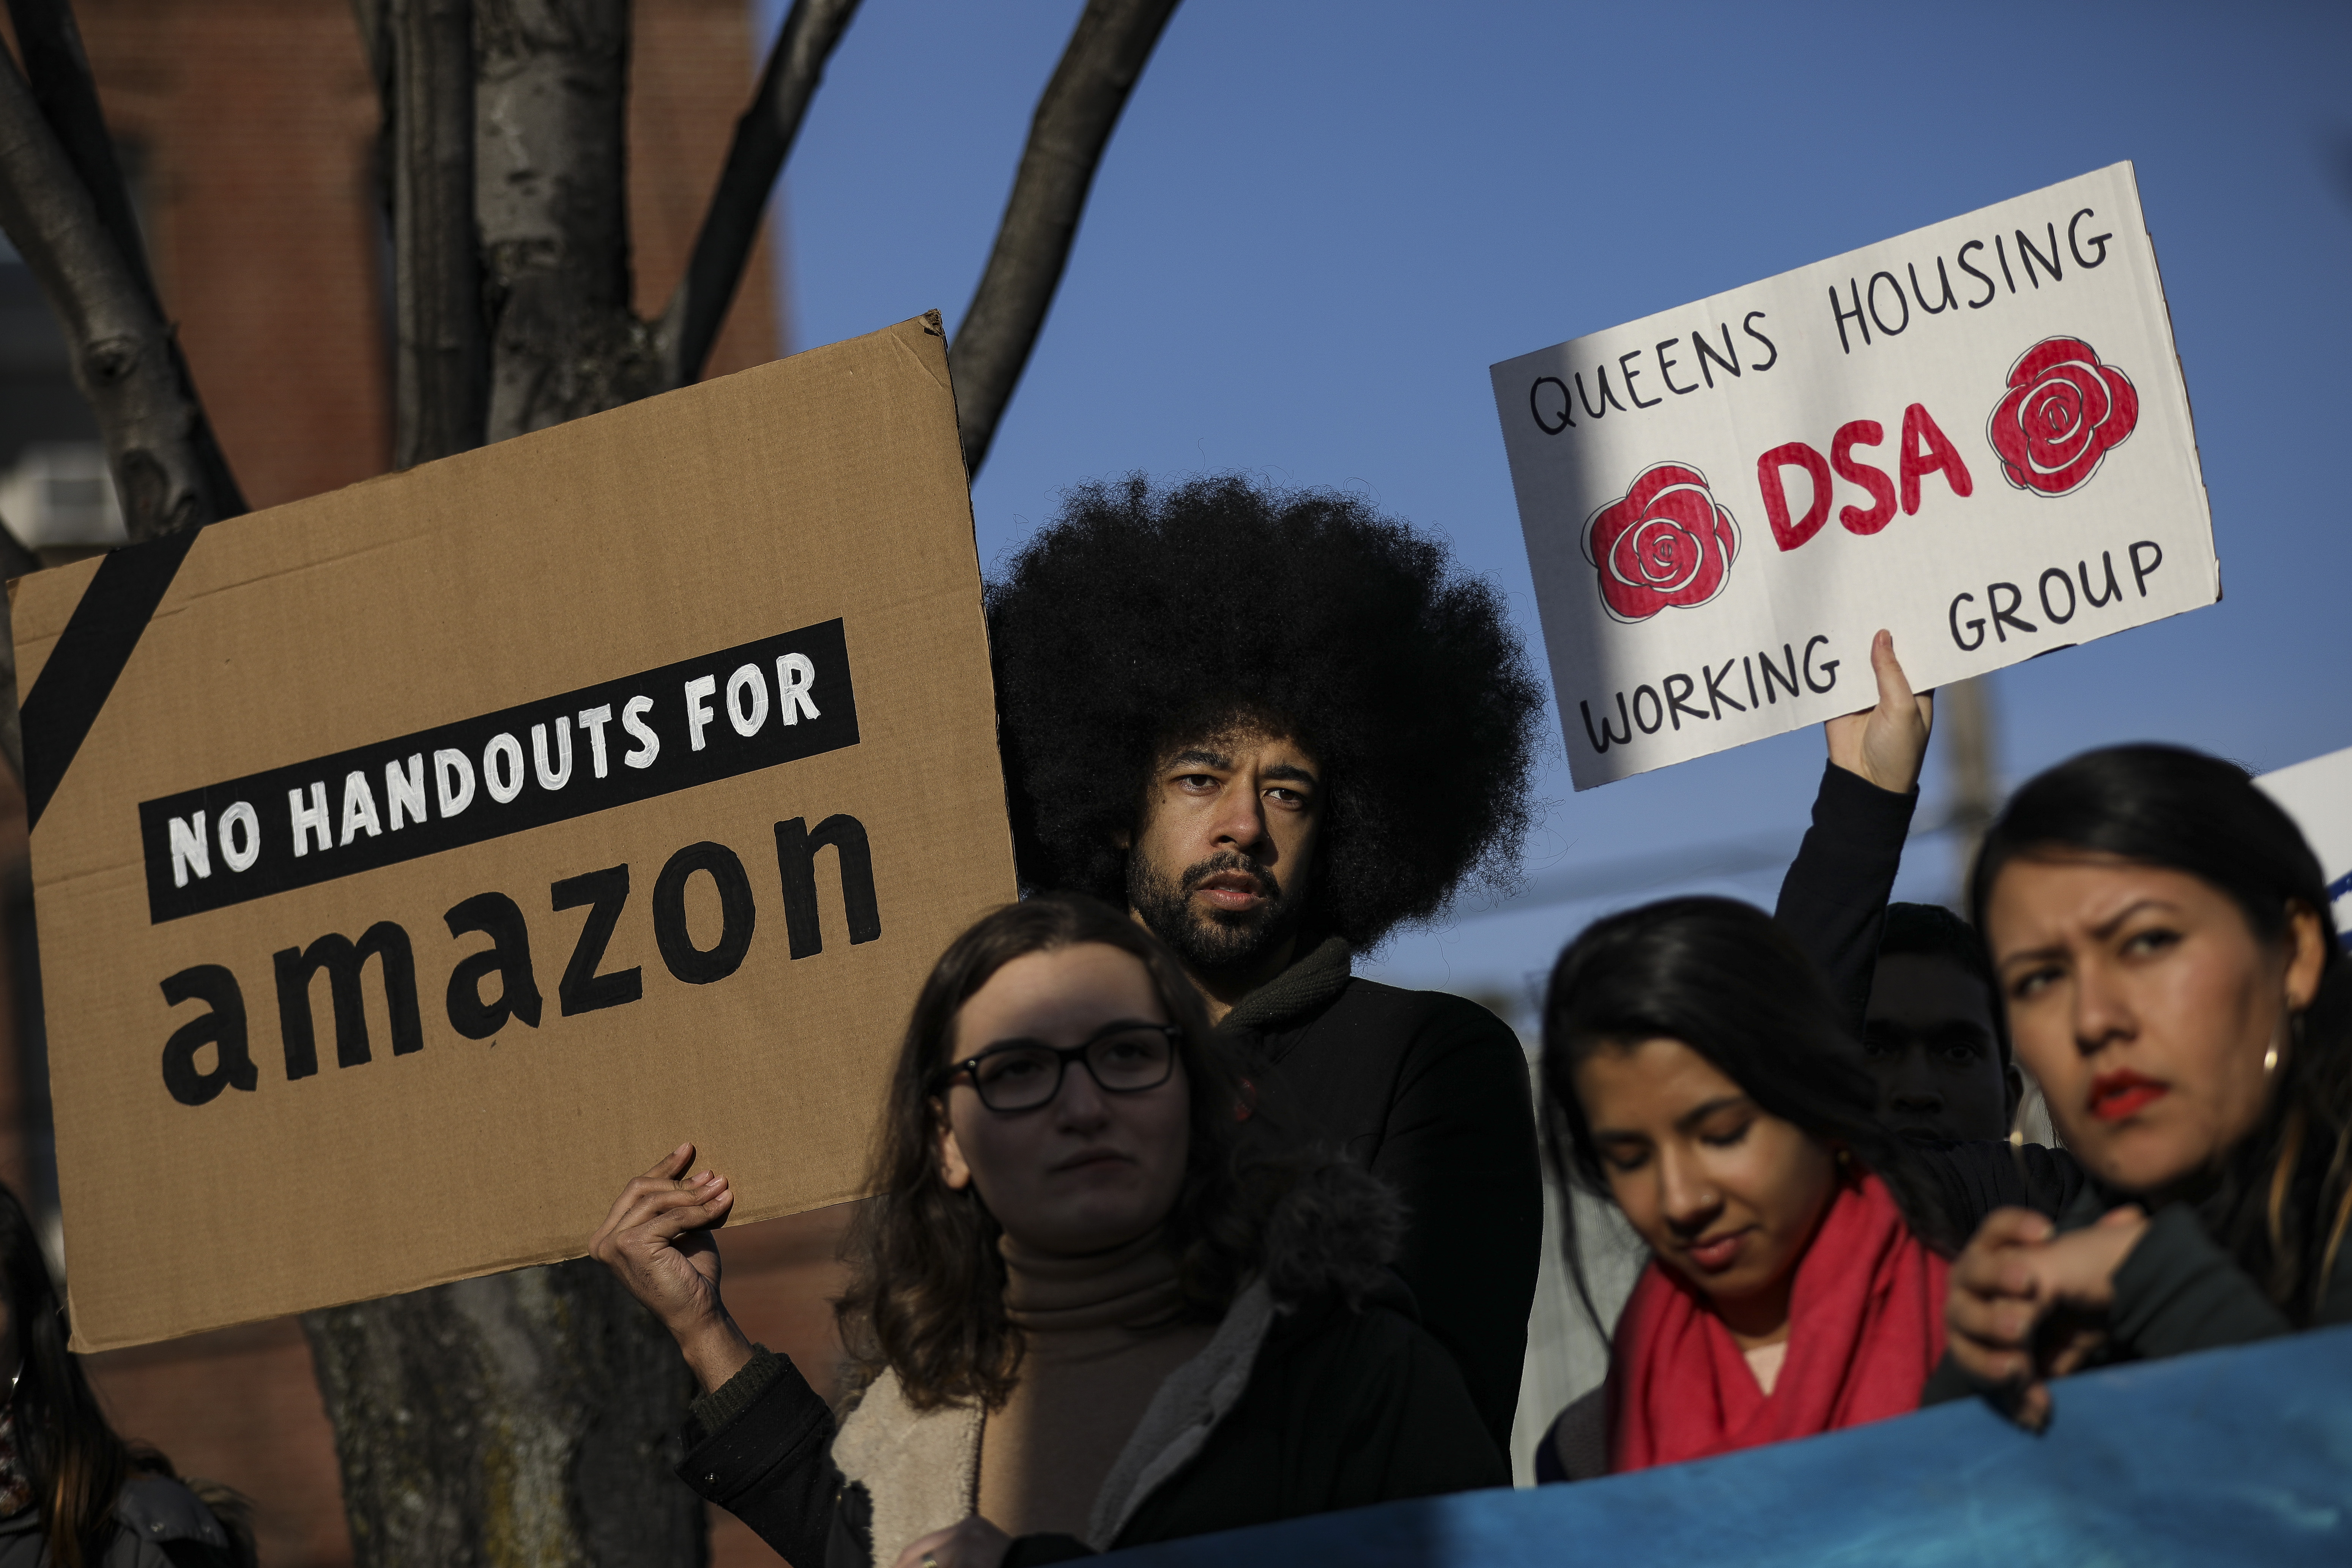 Activists and community members who opposed Amazon's plan to move into Queens rally in celebration of Amazon's decision to pull out of the deal, in the Long Island City neighborhood, February 14, 2019 in the Queens borough of New York City. (Getty Images)